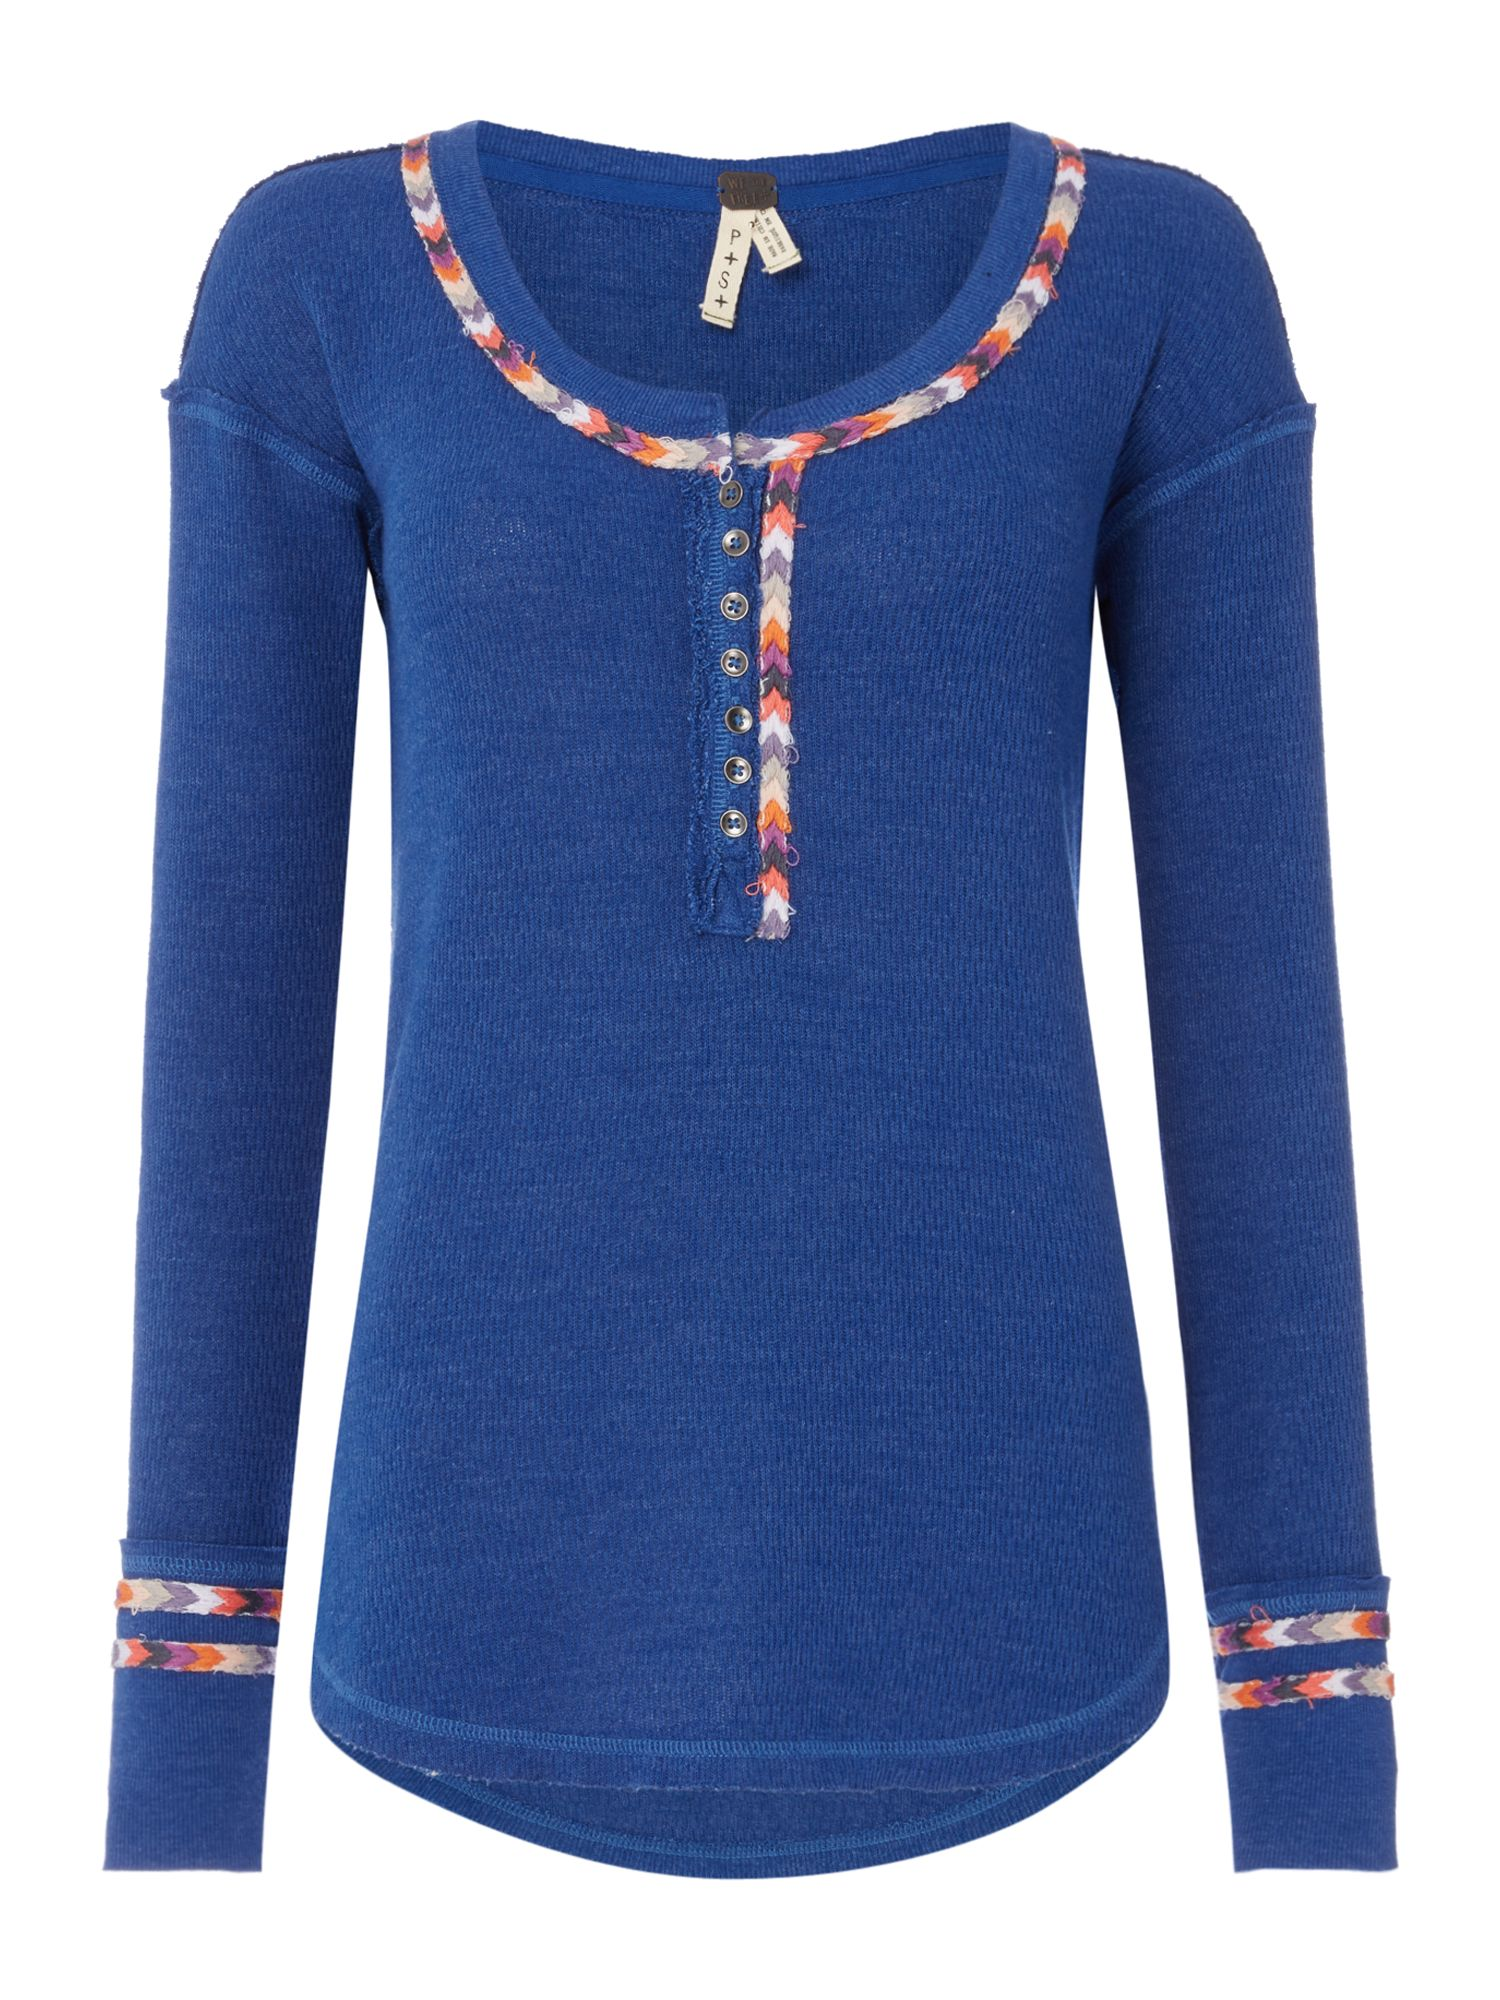 Free People Long Sleeve Rainbow Piping Top, Blue